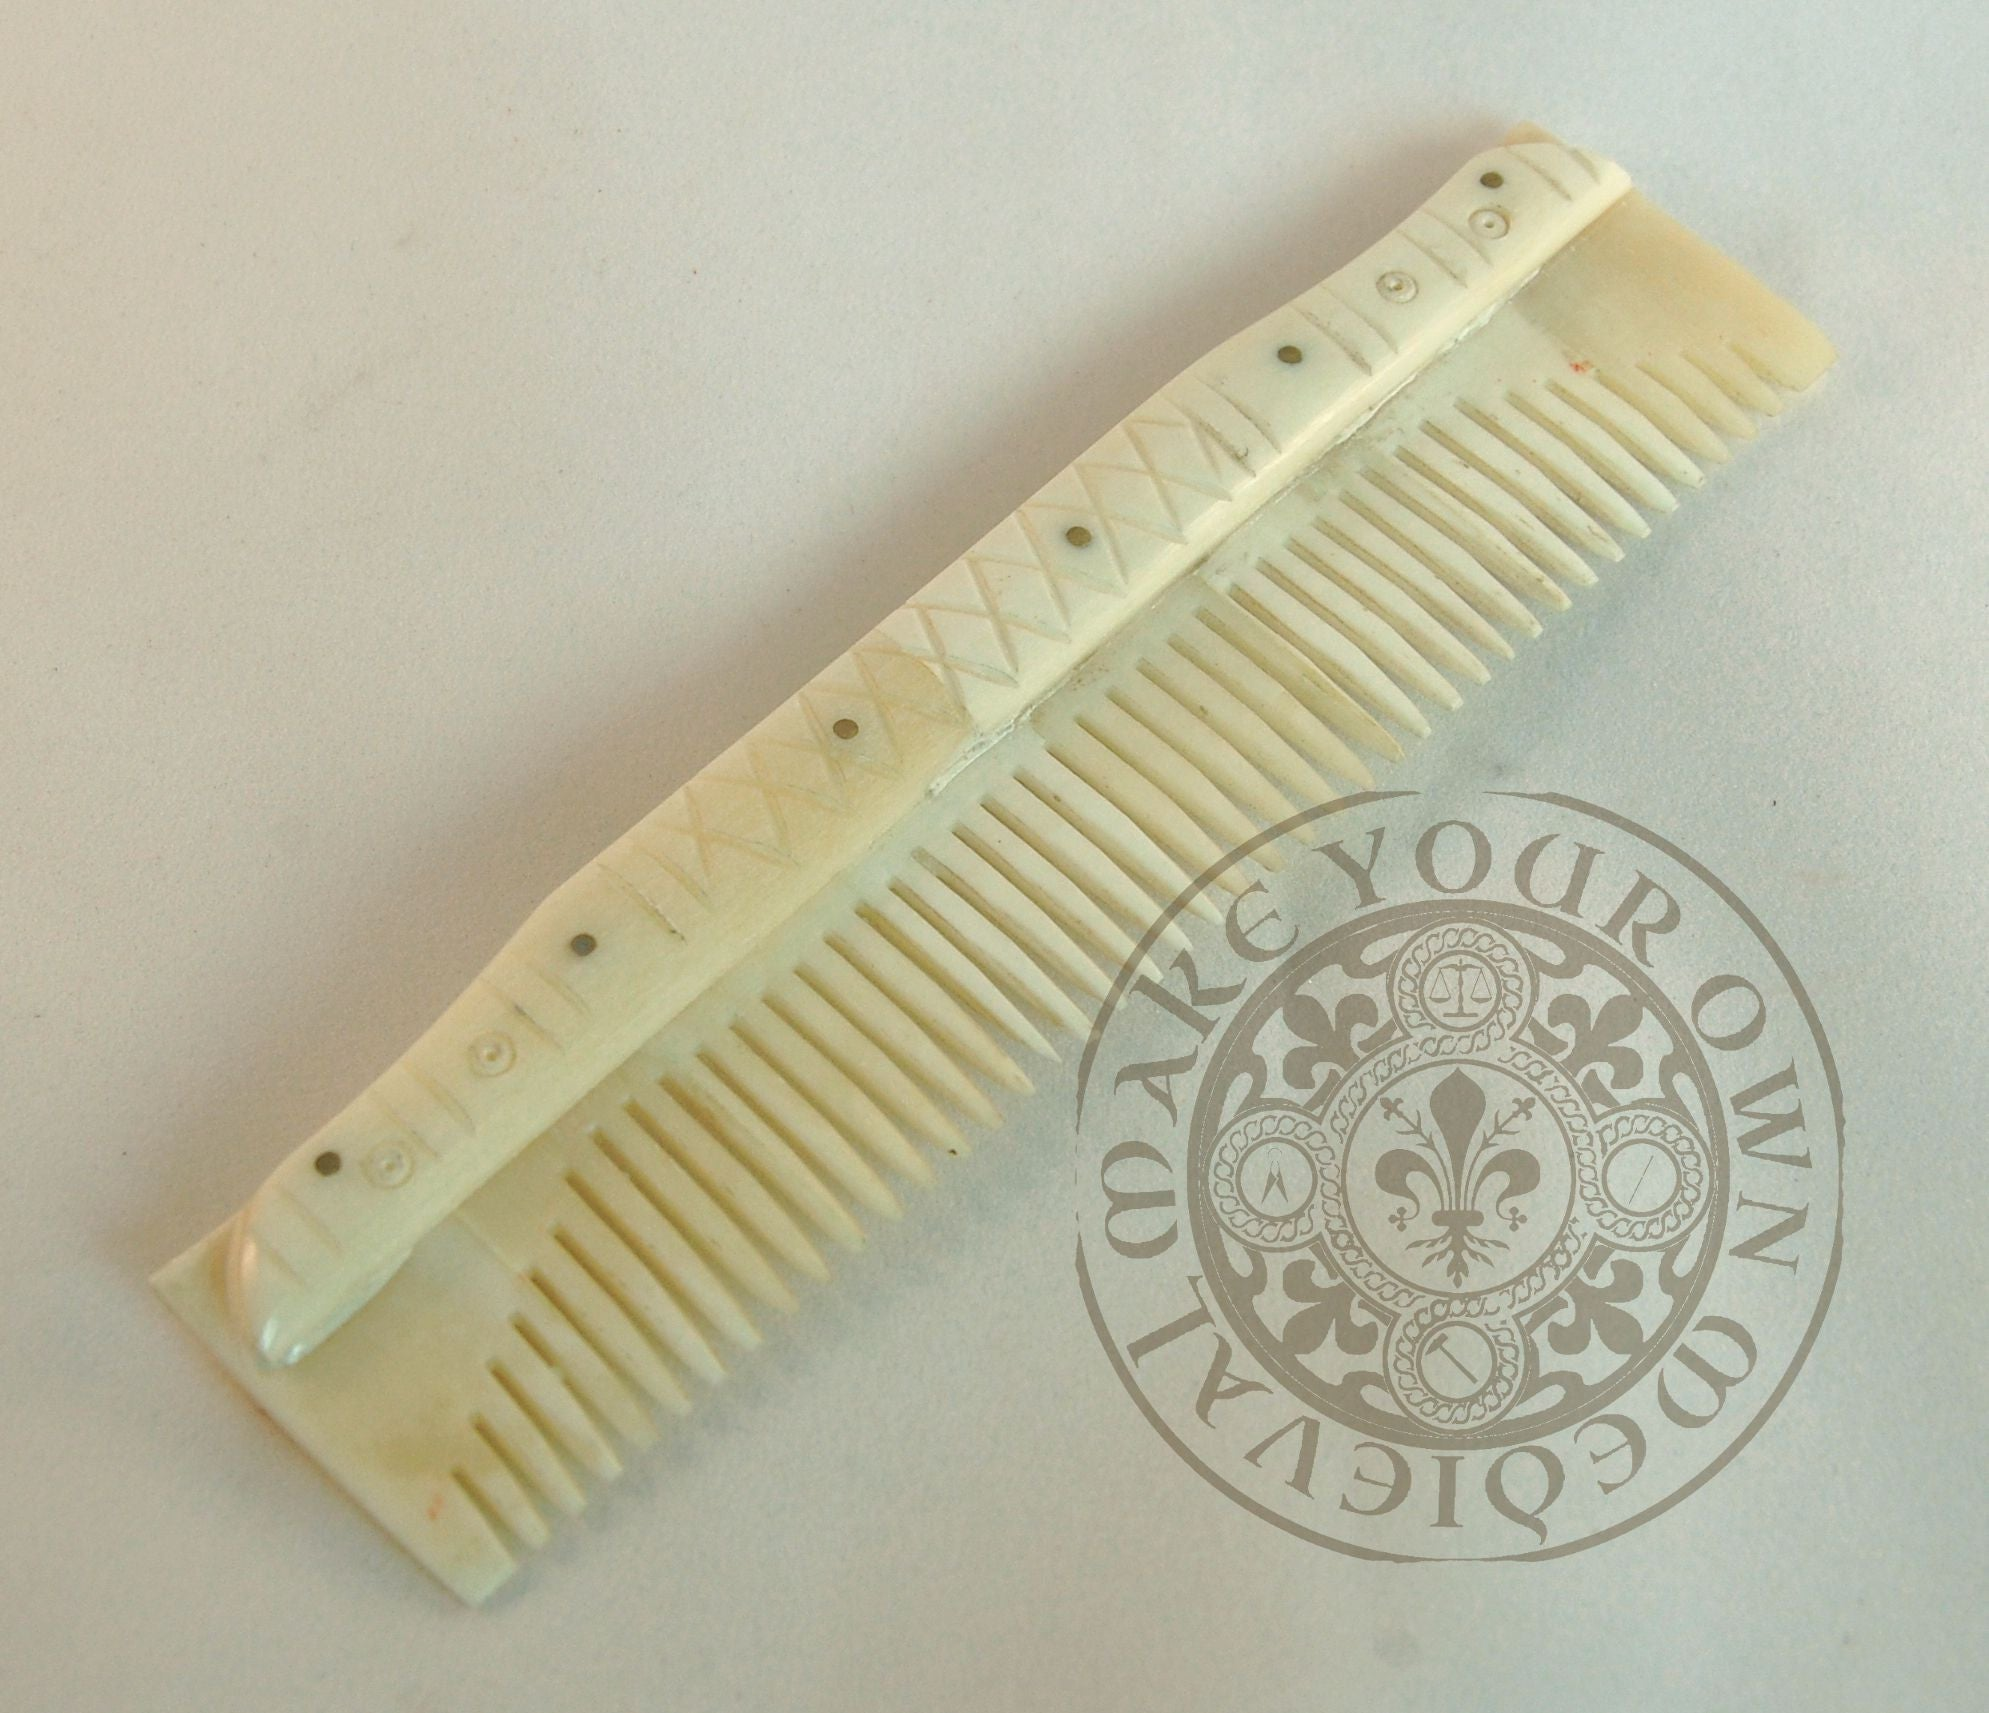 Vking Comb made from Bone Historical Costume